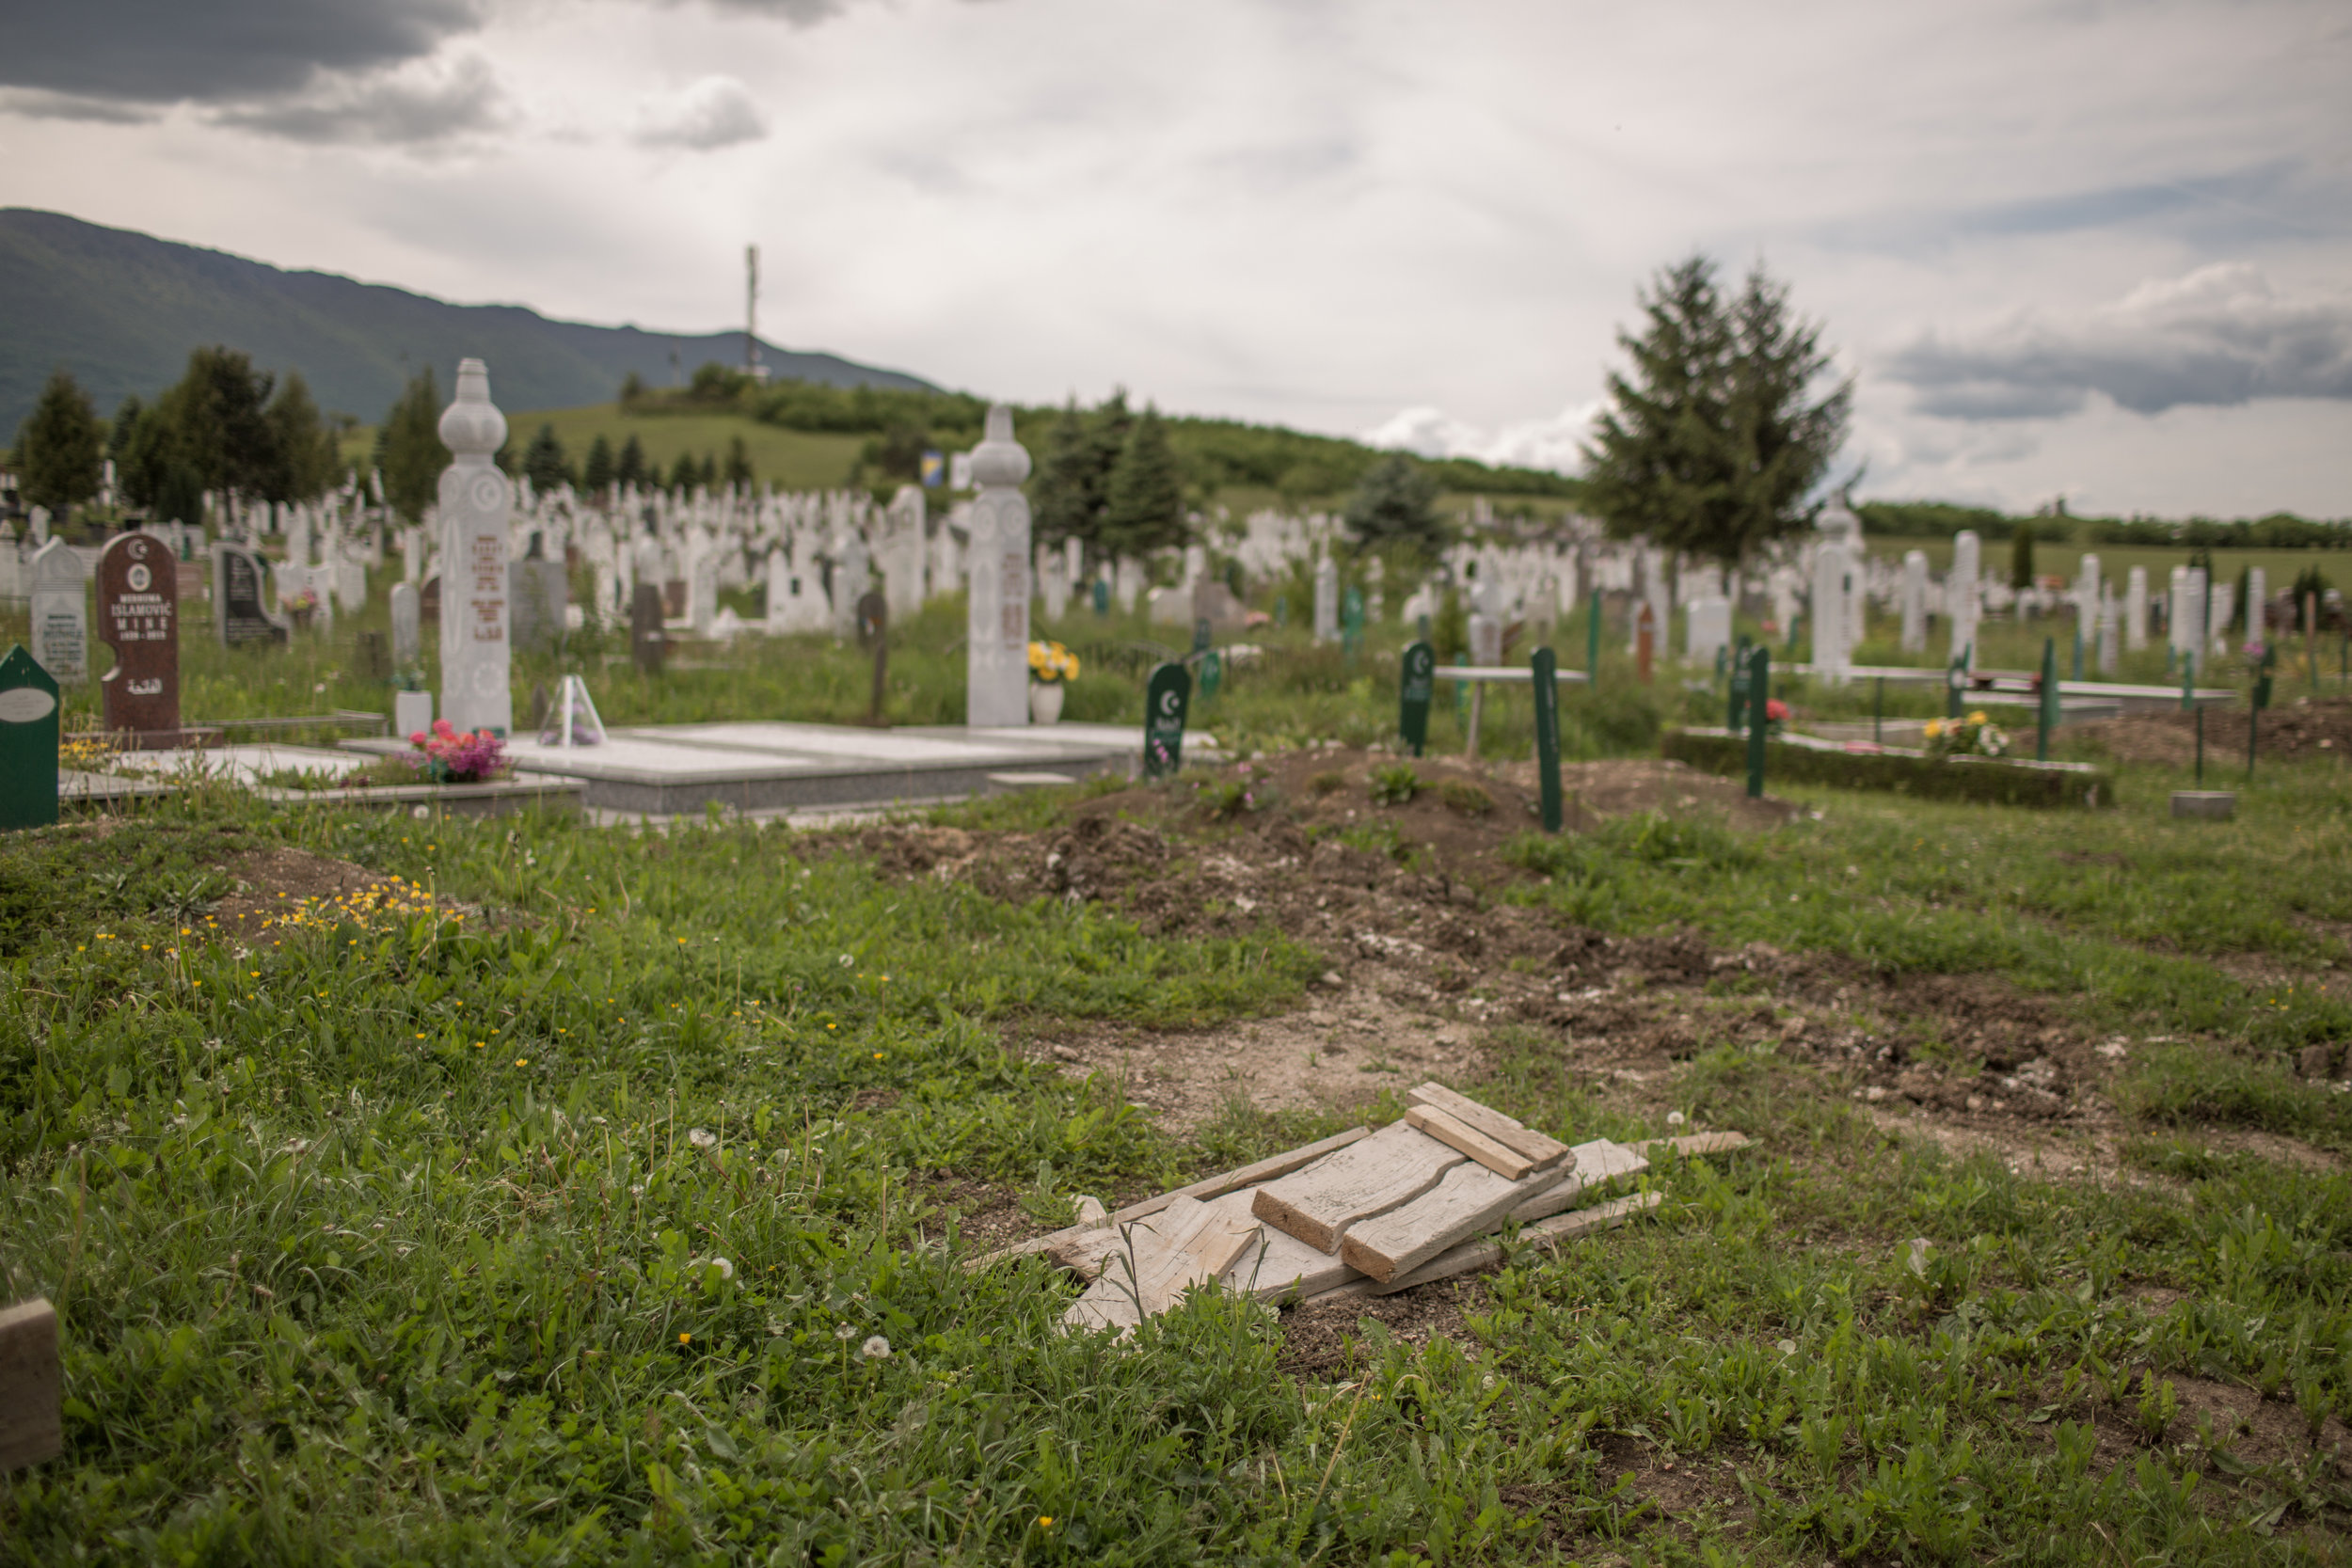 A cemetery in Bihać, BiH. The deceased migrants in the Bihać area are temporarily buried here. If they identify them, they are transported to the countries of their origin through the embassies.